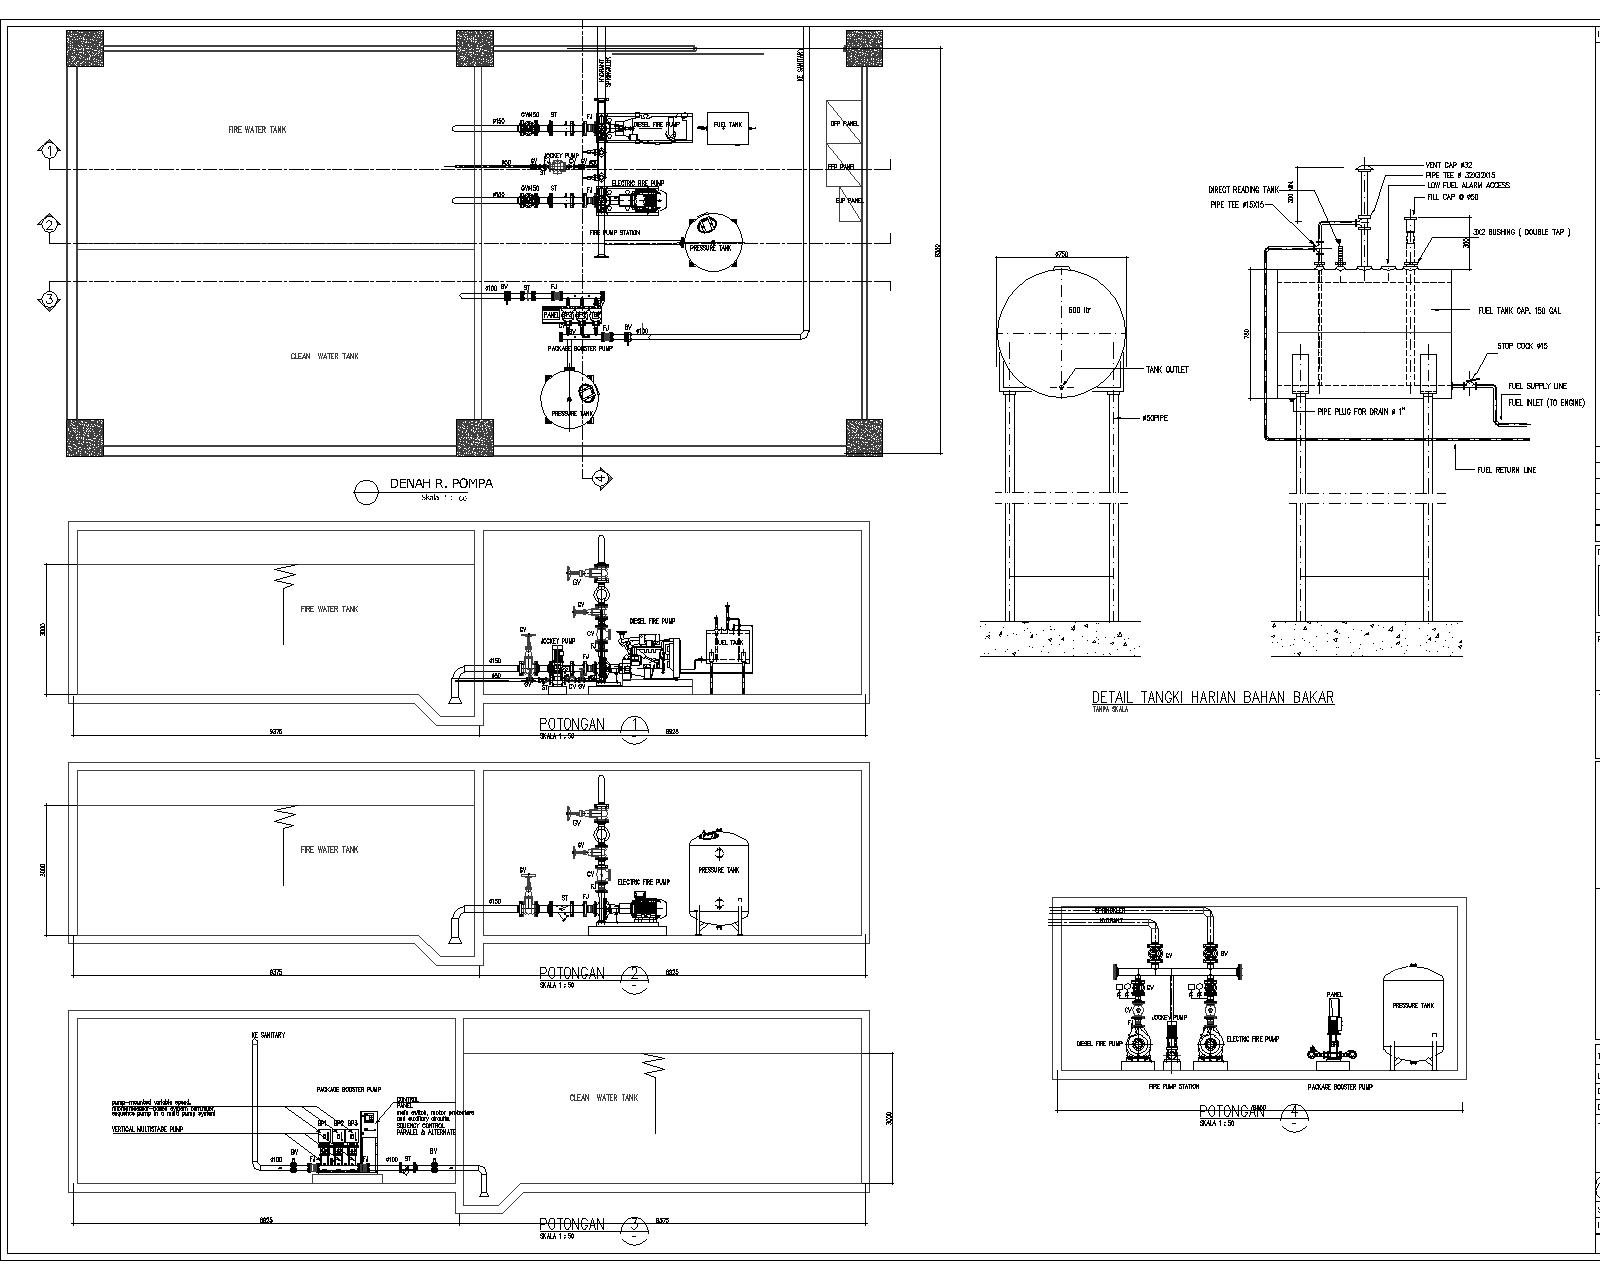 Fire Pump Piping Schematic Electrical Wiring Diagrams Diagram Sensing Lines Www Topsimages Com Engine